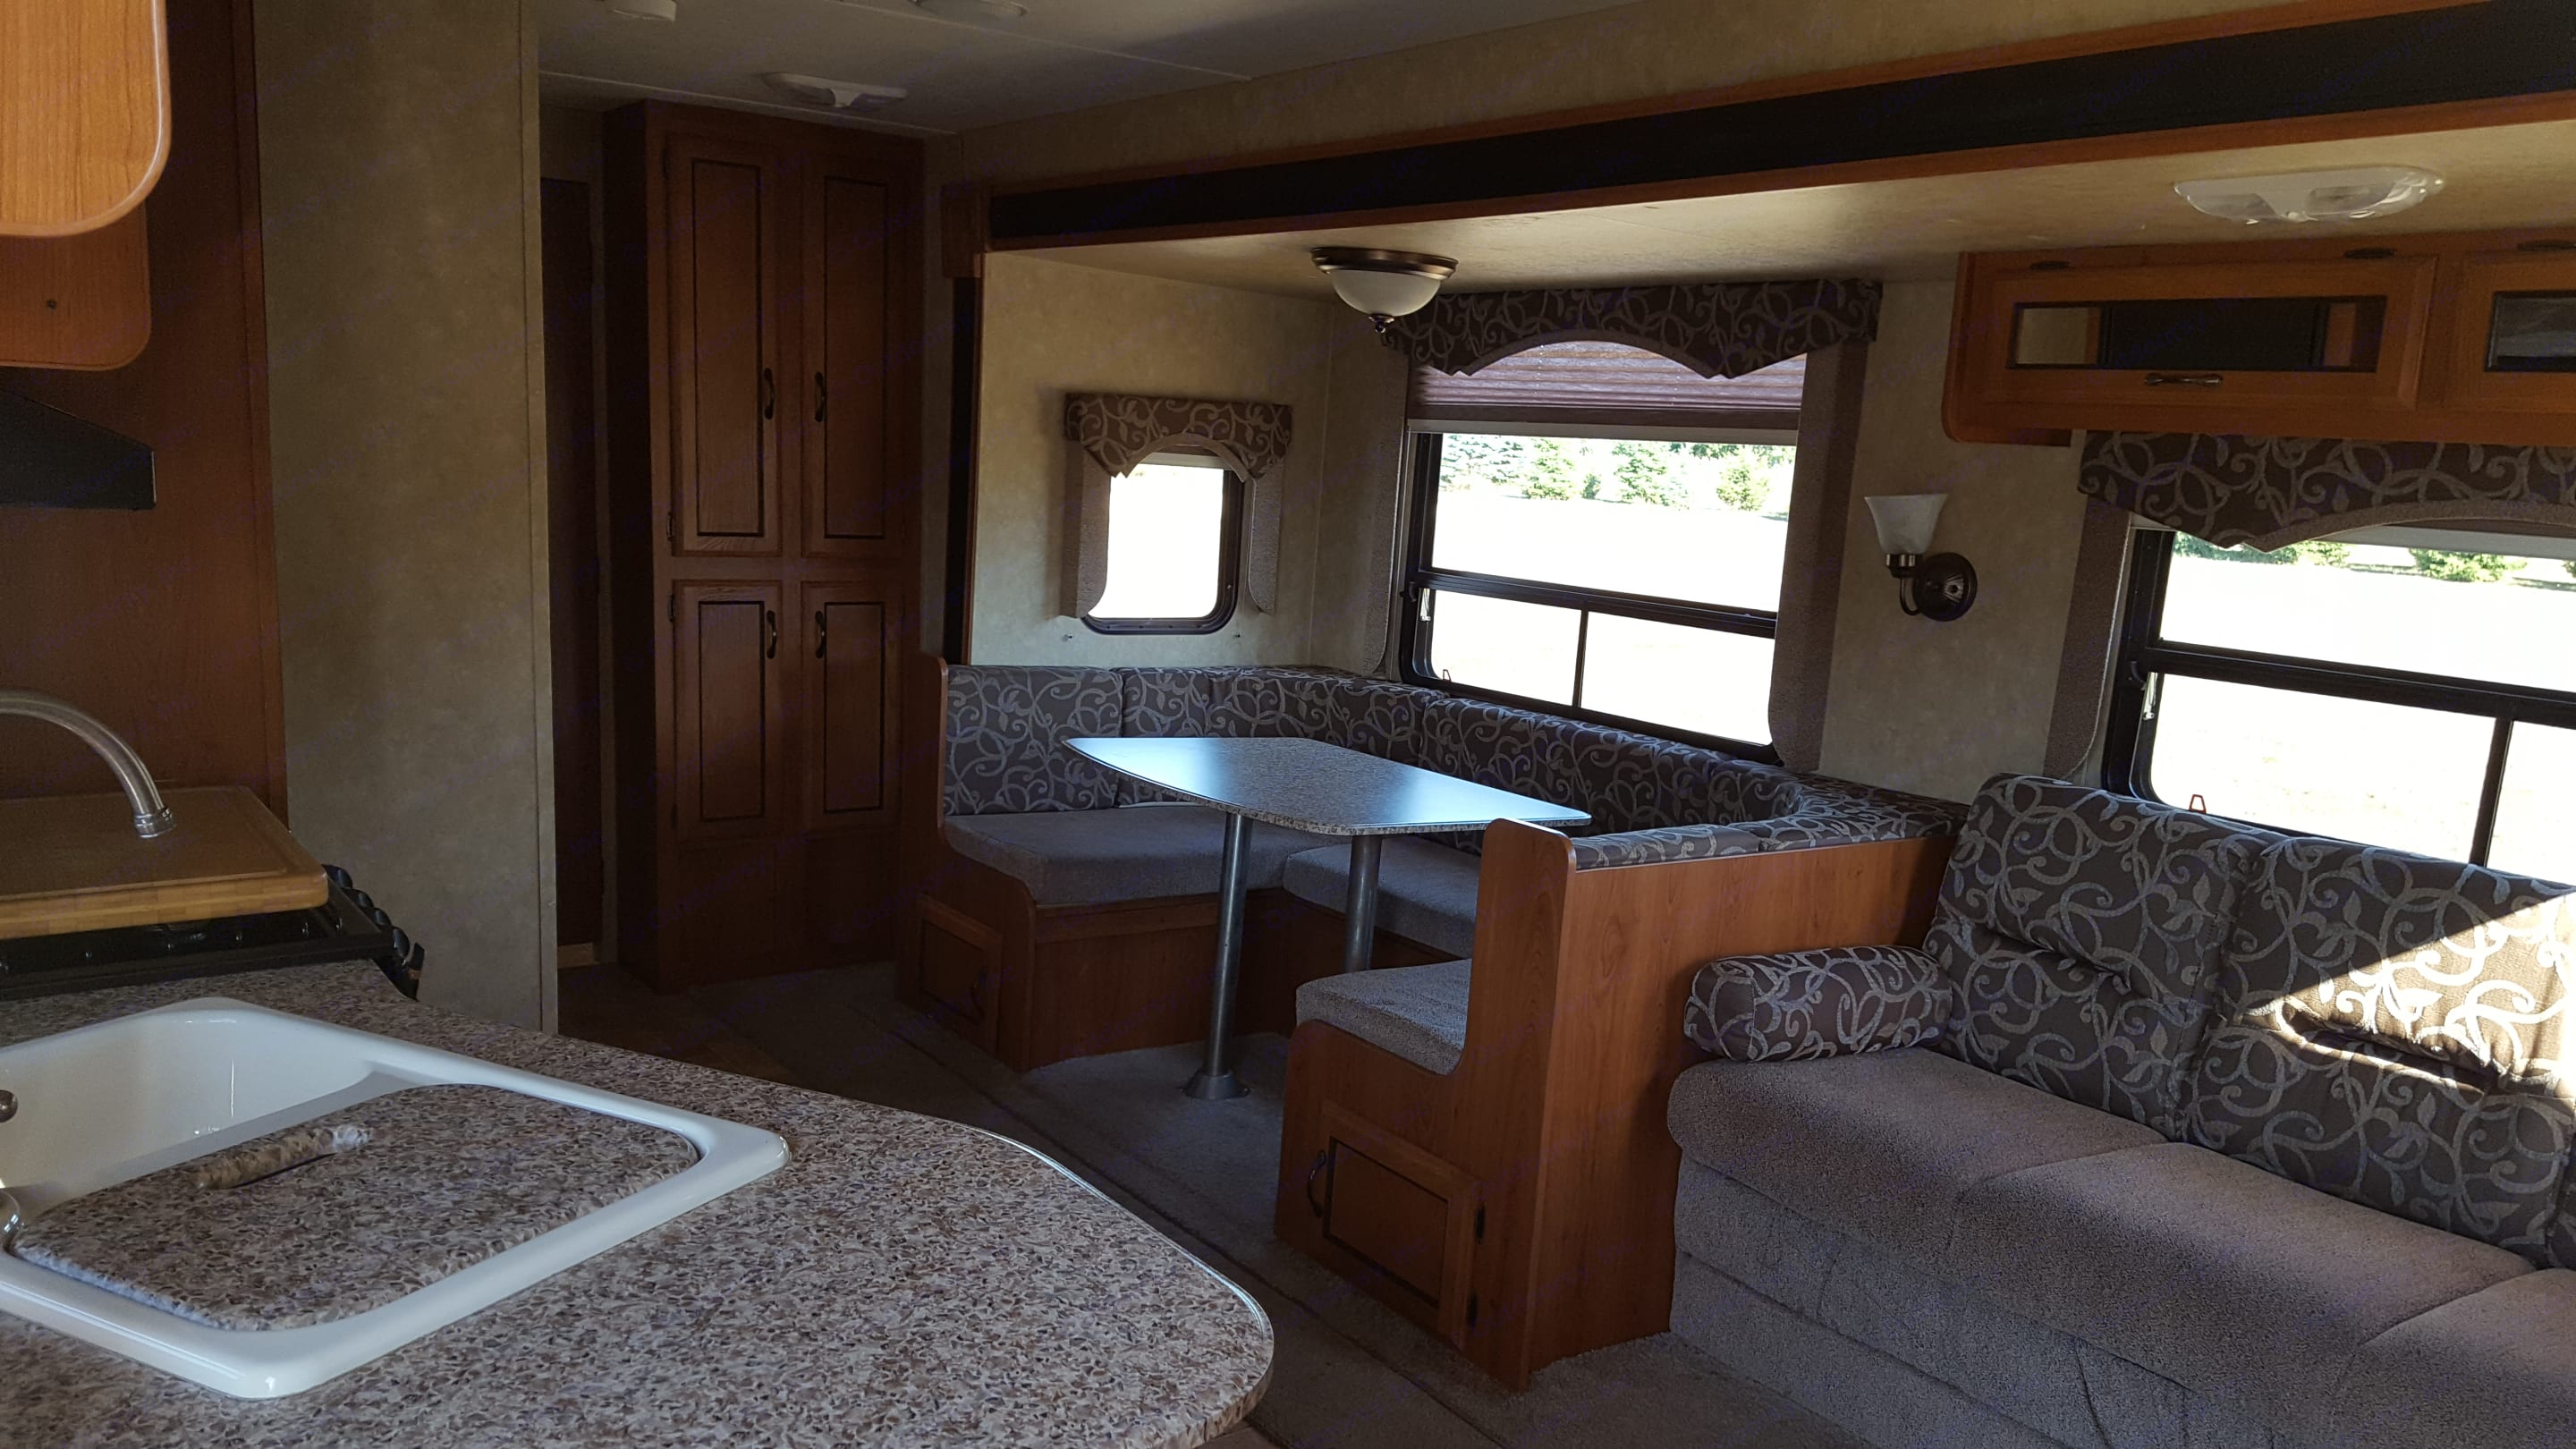 View from entrance. Coachmen Catalina 2012